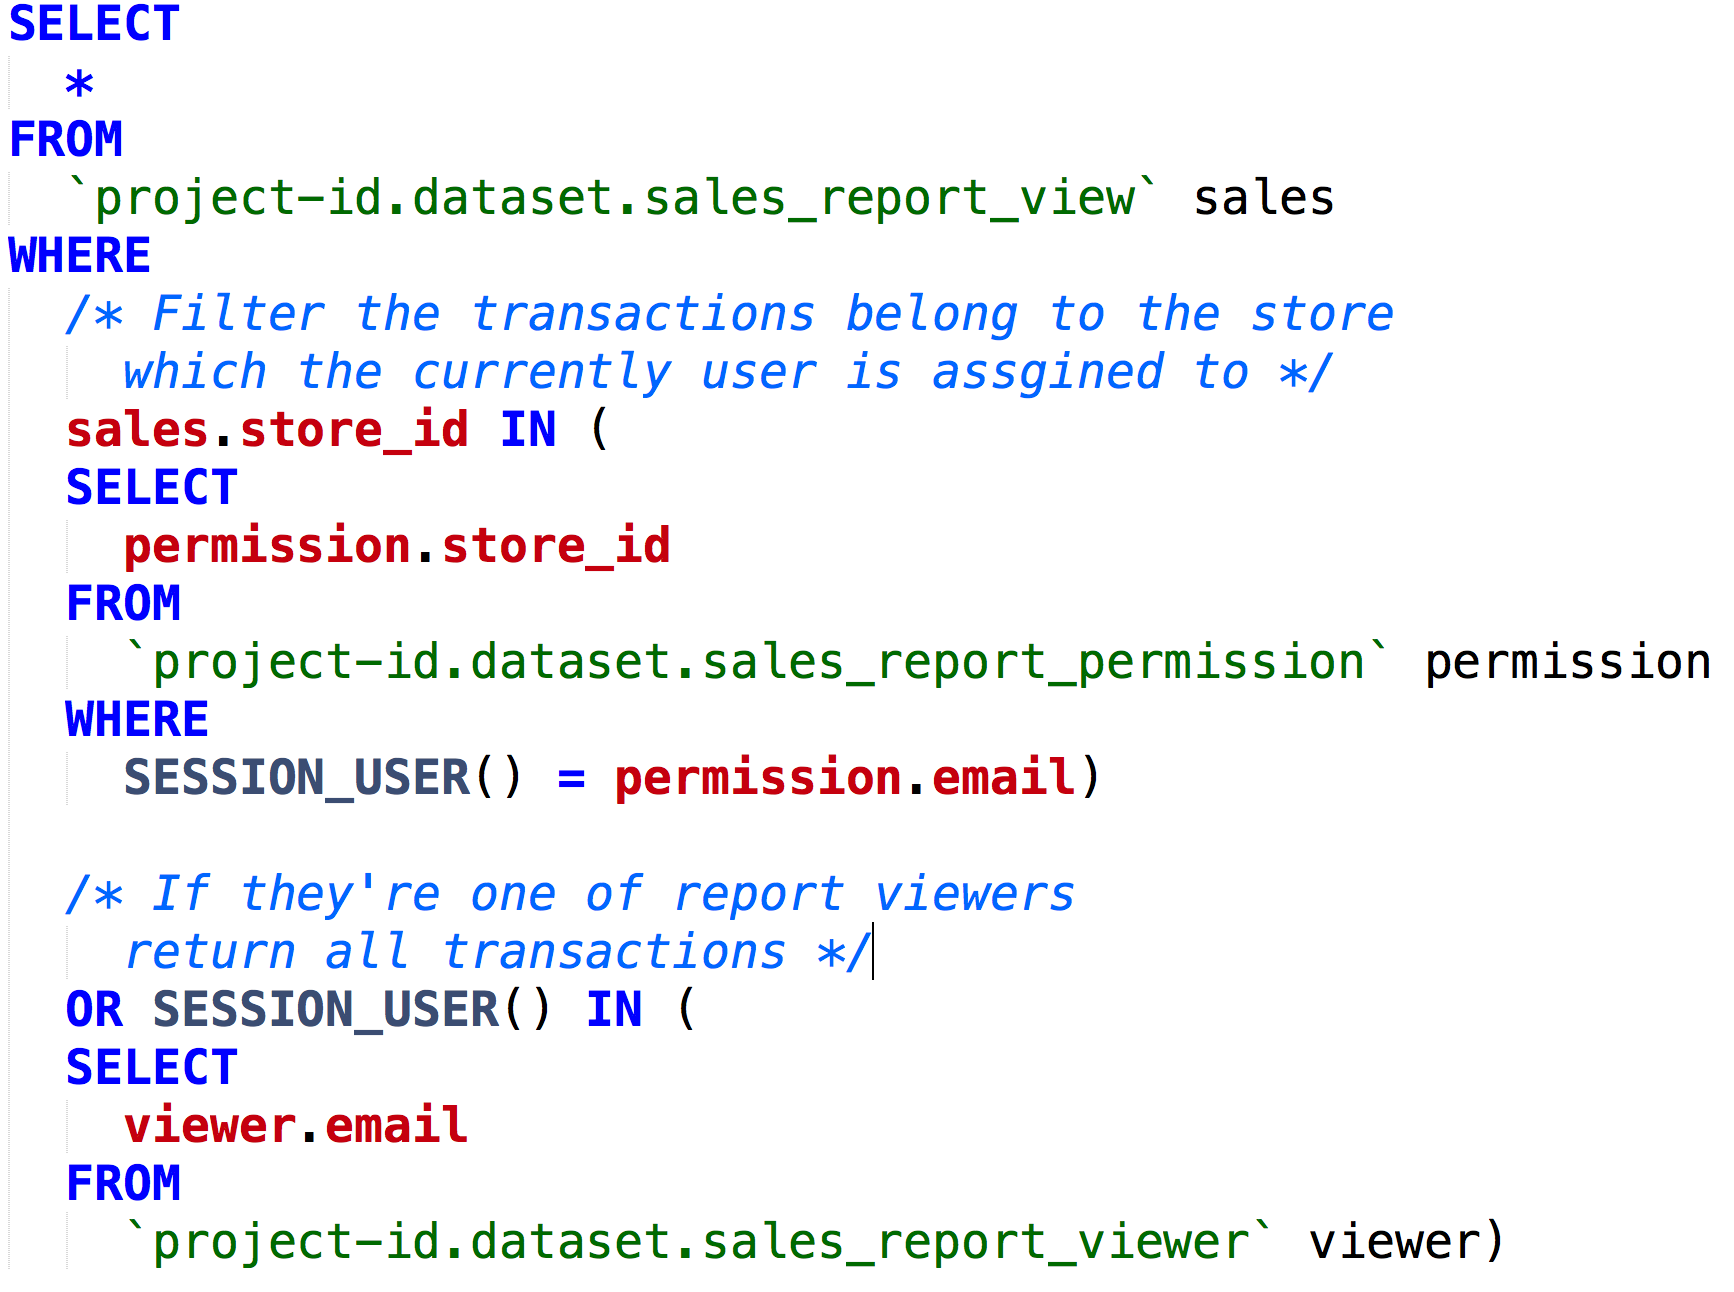 Enabling data accessibility at 7-Eleven (with Data Studio